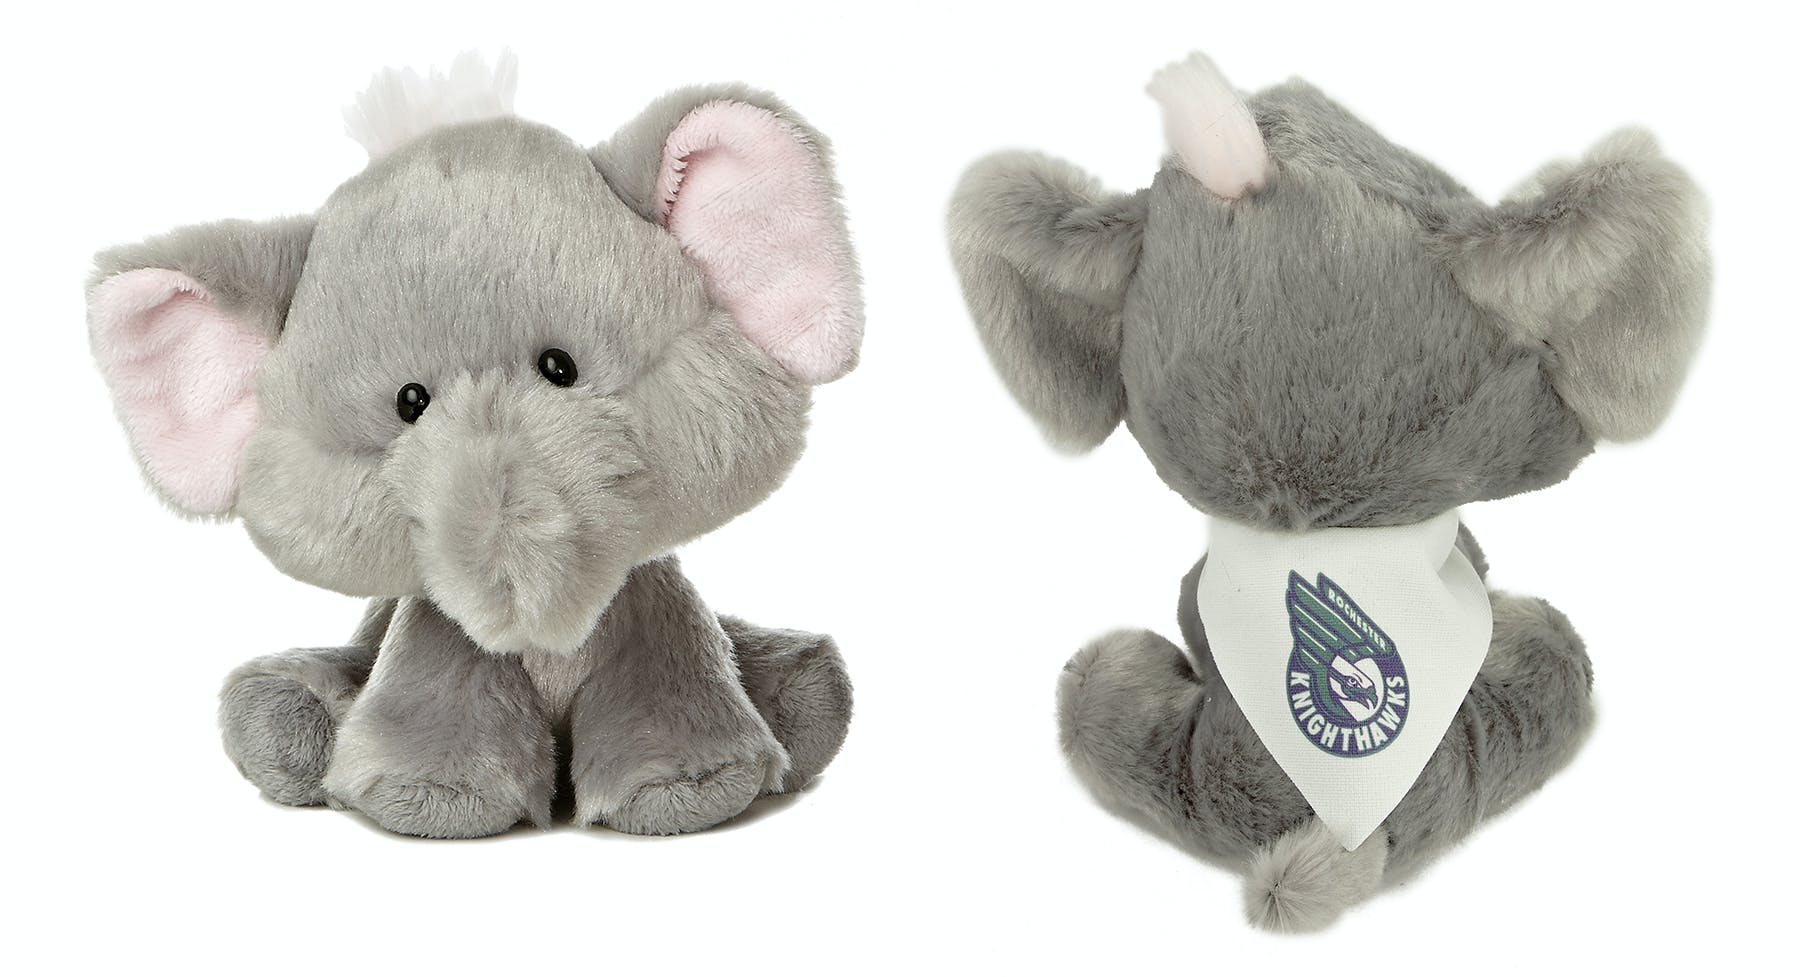 Elephant with Bandana (Item # NGNKS-JNDZR) Stuffed toy sold by InkEasy